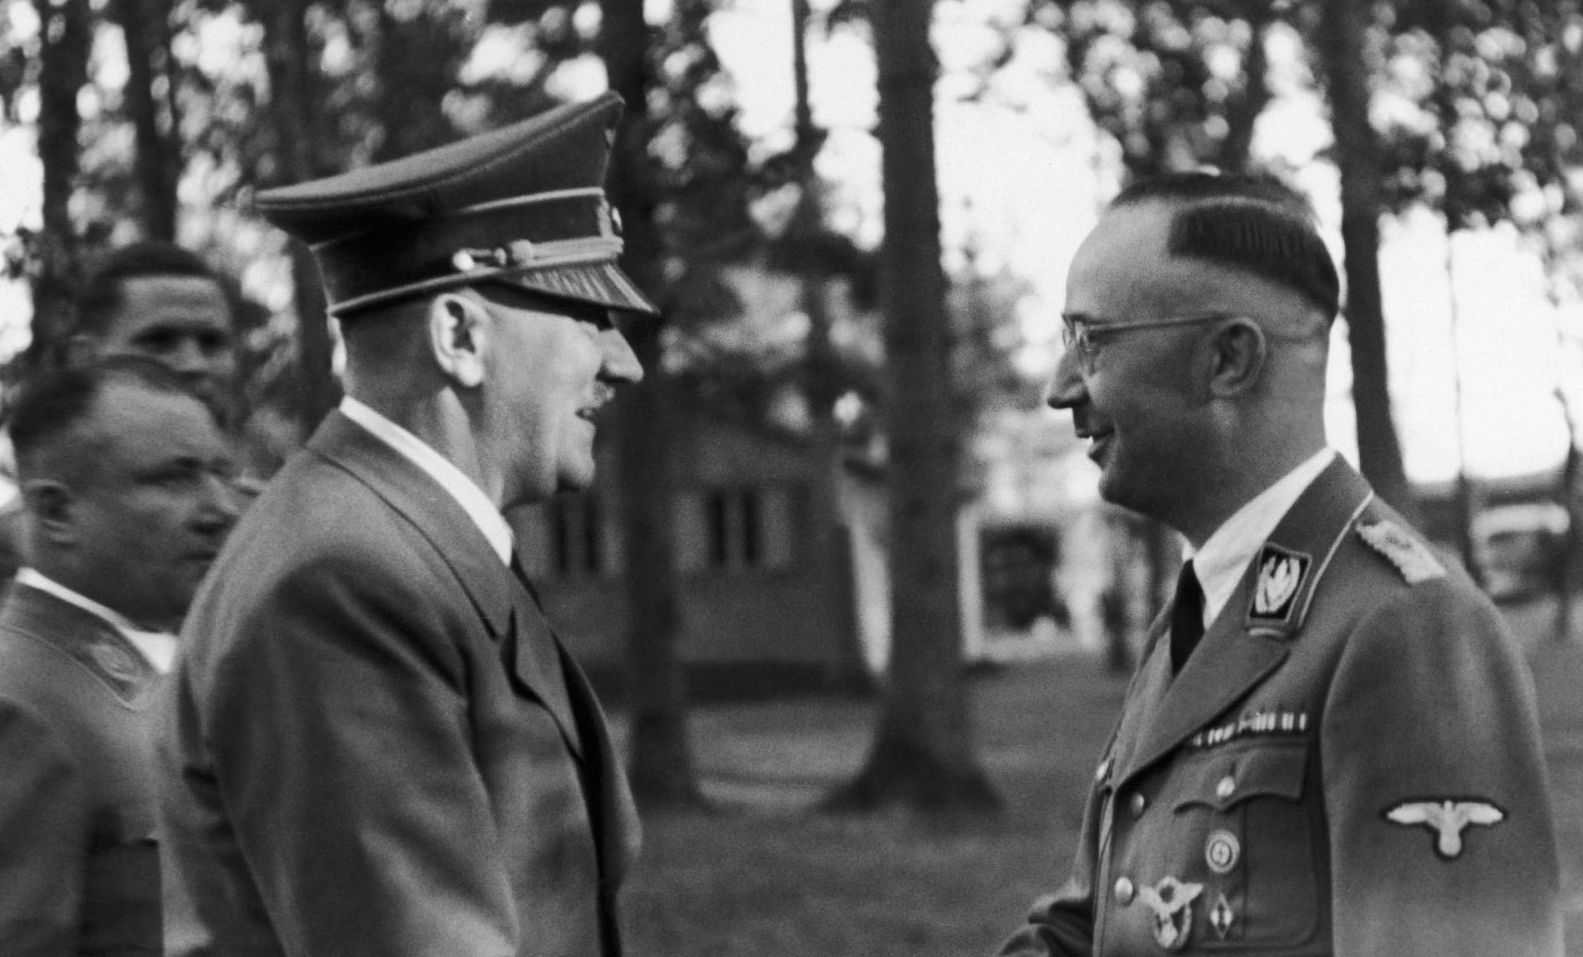 The Fuhrer Adolf HITLER visiting his headquarters and congratulating Heinrich HIMMLER (right), head of the SS and the Gestapo, for his 43rd birthday, on October 13, 1943.Supreme head of all the German police forces in 1938, HIMMLER became Minister of the Interior in November 1943.Le 13 octobre 1943, en visite à son quartier général, le Führer, Adolf HITLER félicite Heinrich HIMMLER (à droite), chef des SS et de la Gestapo à l'occasion de son 43ème anniversaire.Chef suprême de toutes les polices allemandes en 1938, HIMMLER devient Ministre de l'Intérieur en novembre 1943.